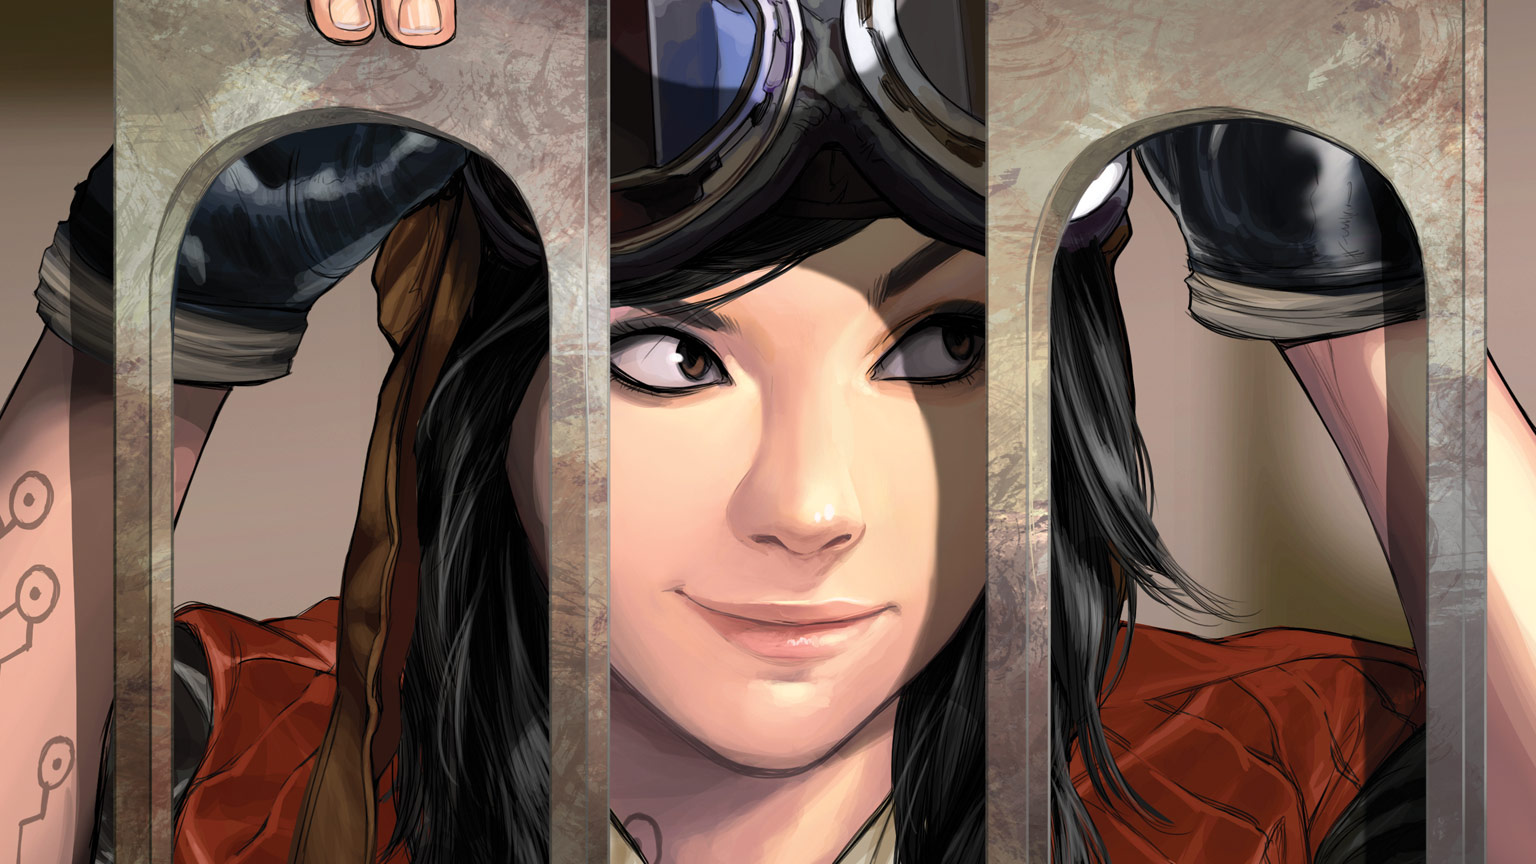 Doctor Aphra behind bars from the cover of Doctor Aphra #39